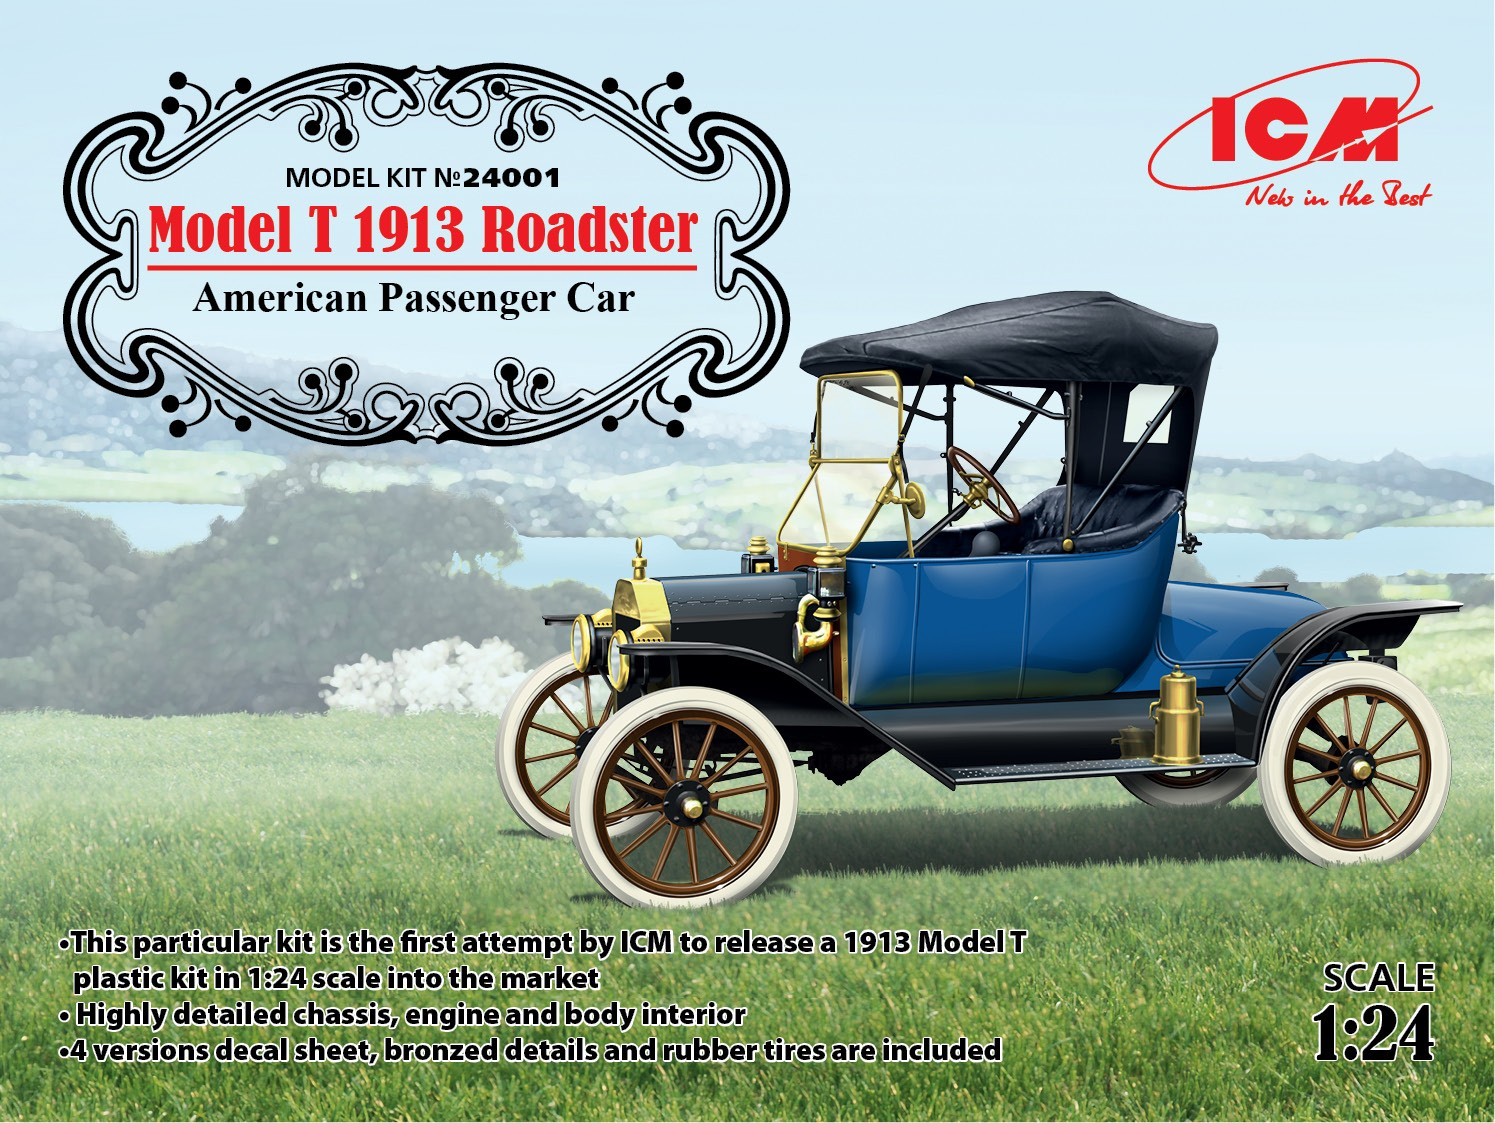 ICM 1/24 Model T 1913 Roadster, American Passenger Car # 24001